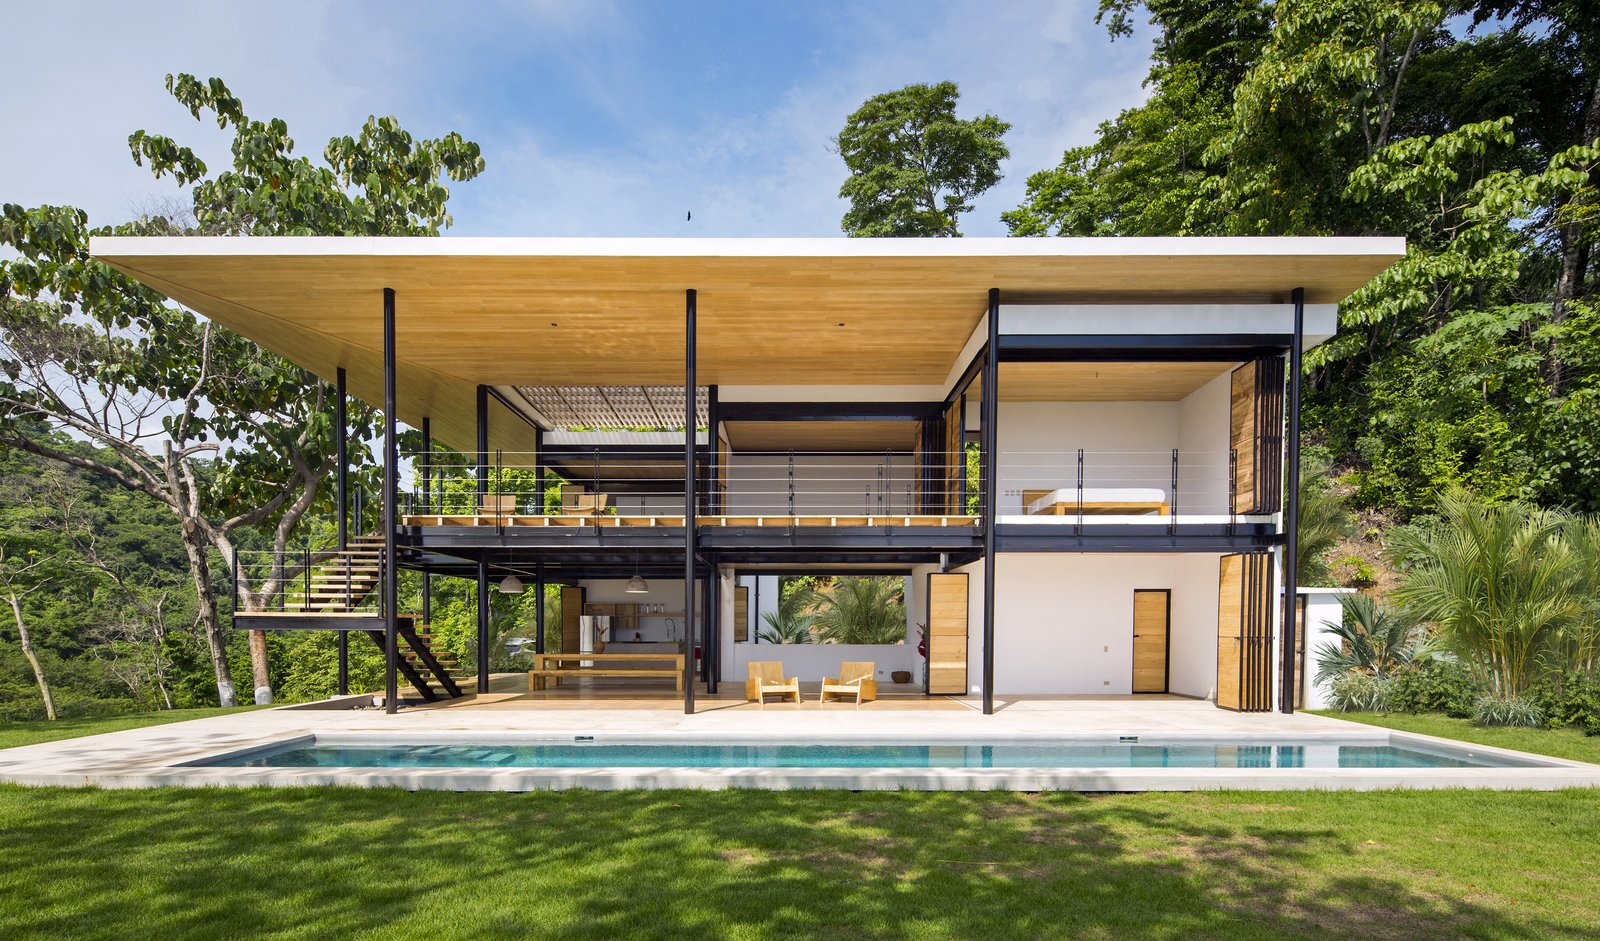 Moveable Walls Amplify Sublime Views For This Costa Rican Home